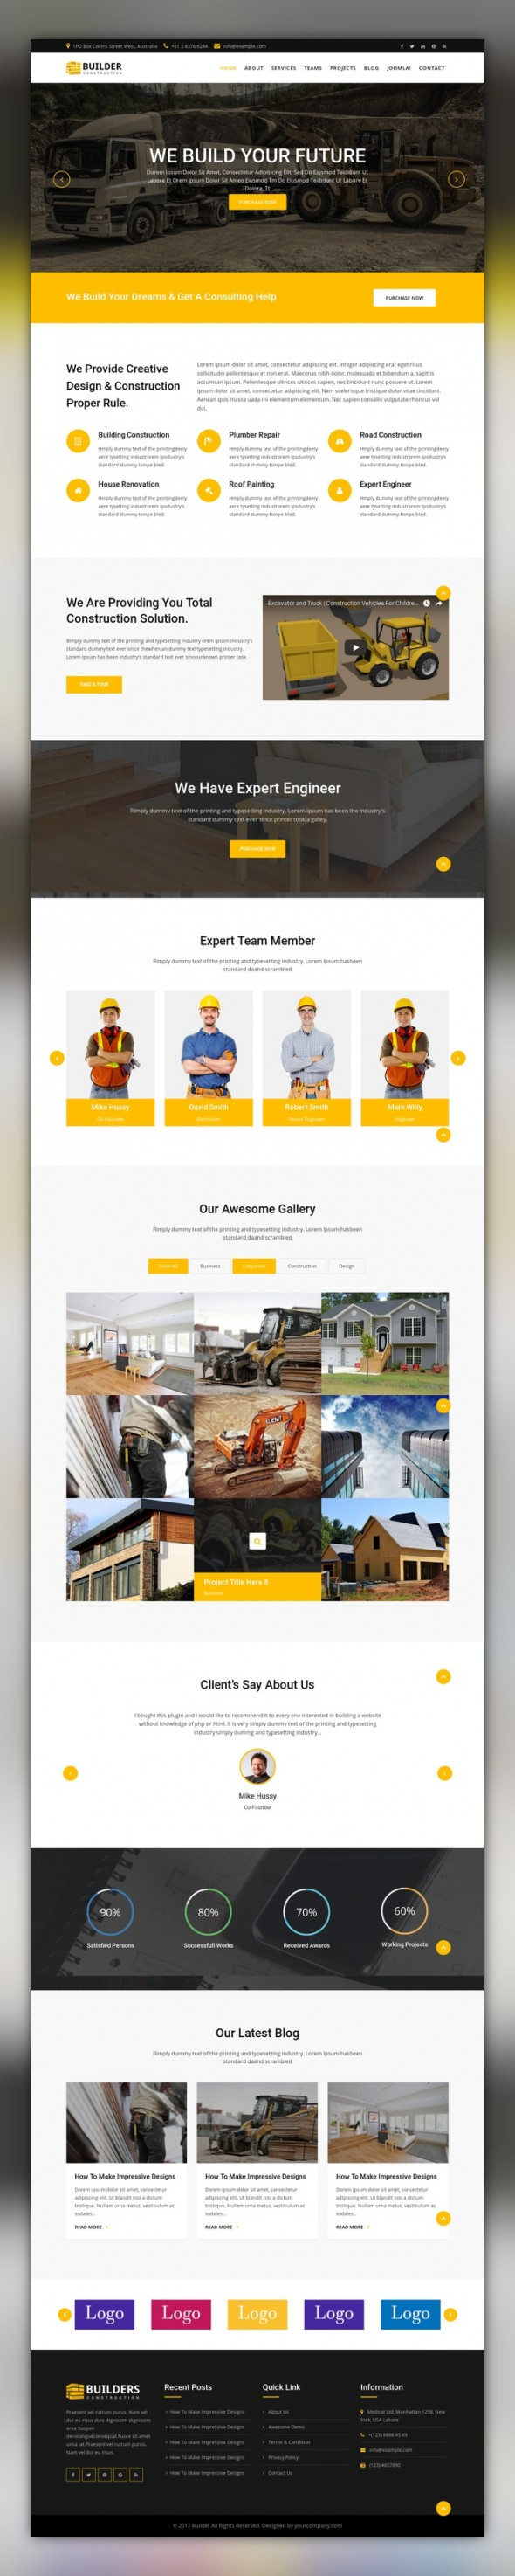 builder construction company joomla template business website corporate business and template. Black Bedroom Furniture Sets. Home Design Ideas